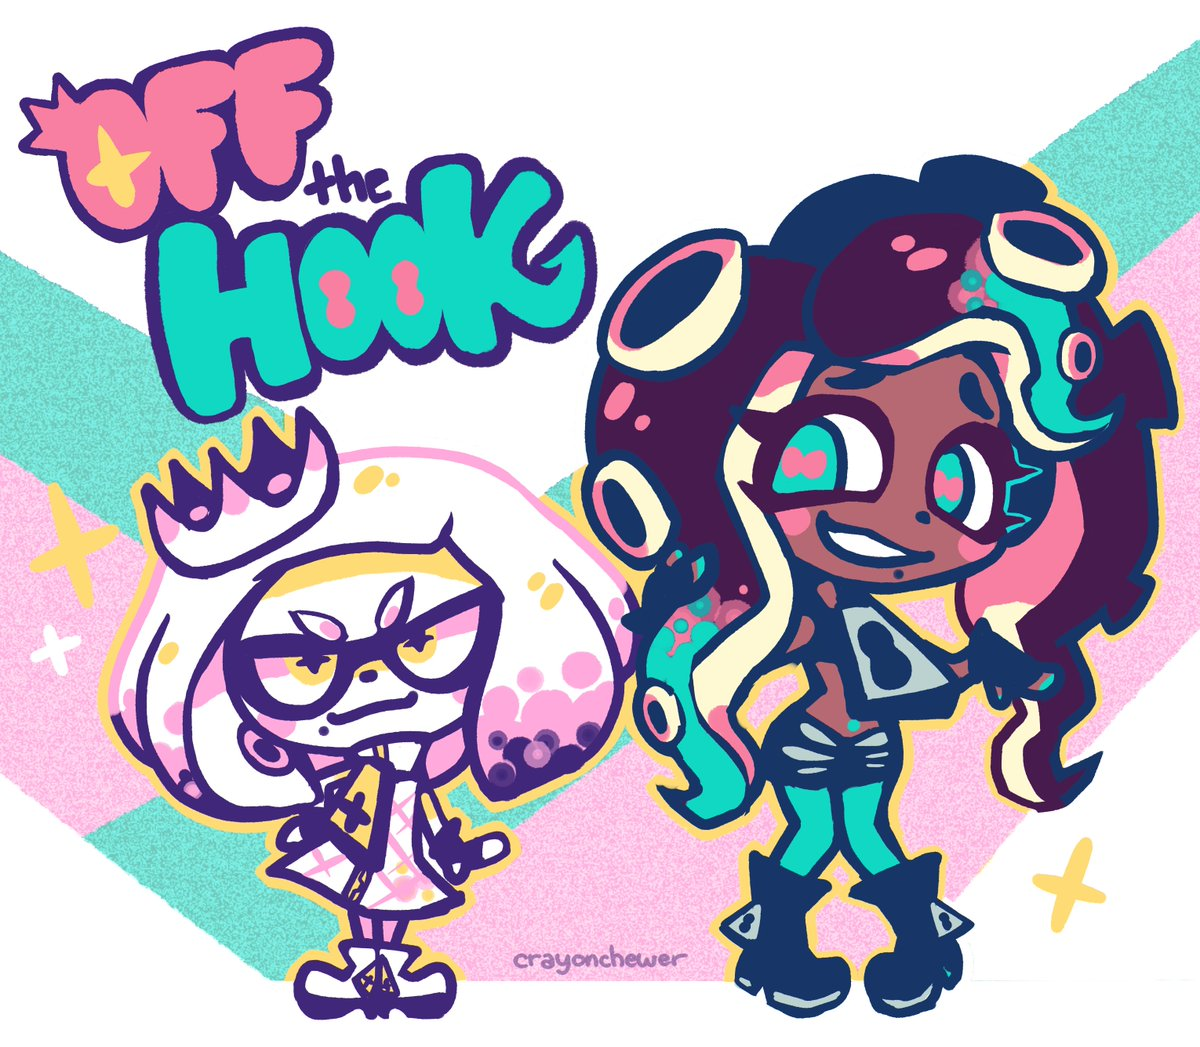 Oh look, it's that hot new squid band Sassy & Sorry! https://t.co/N3nwo6nlX3